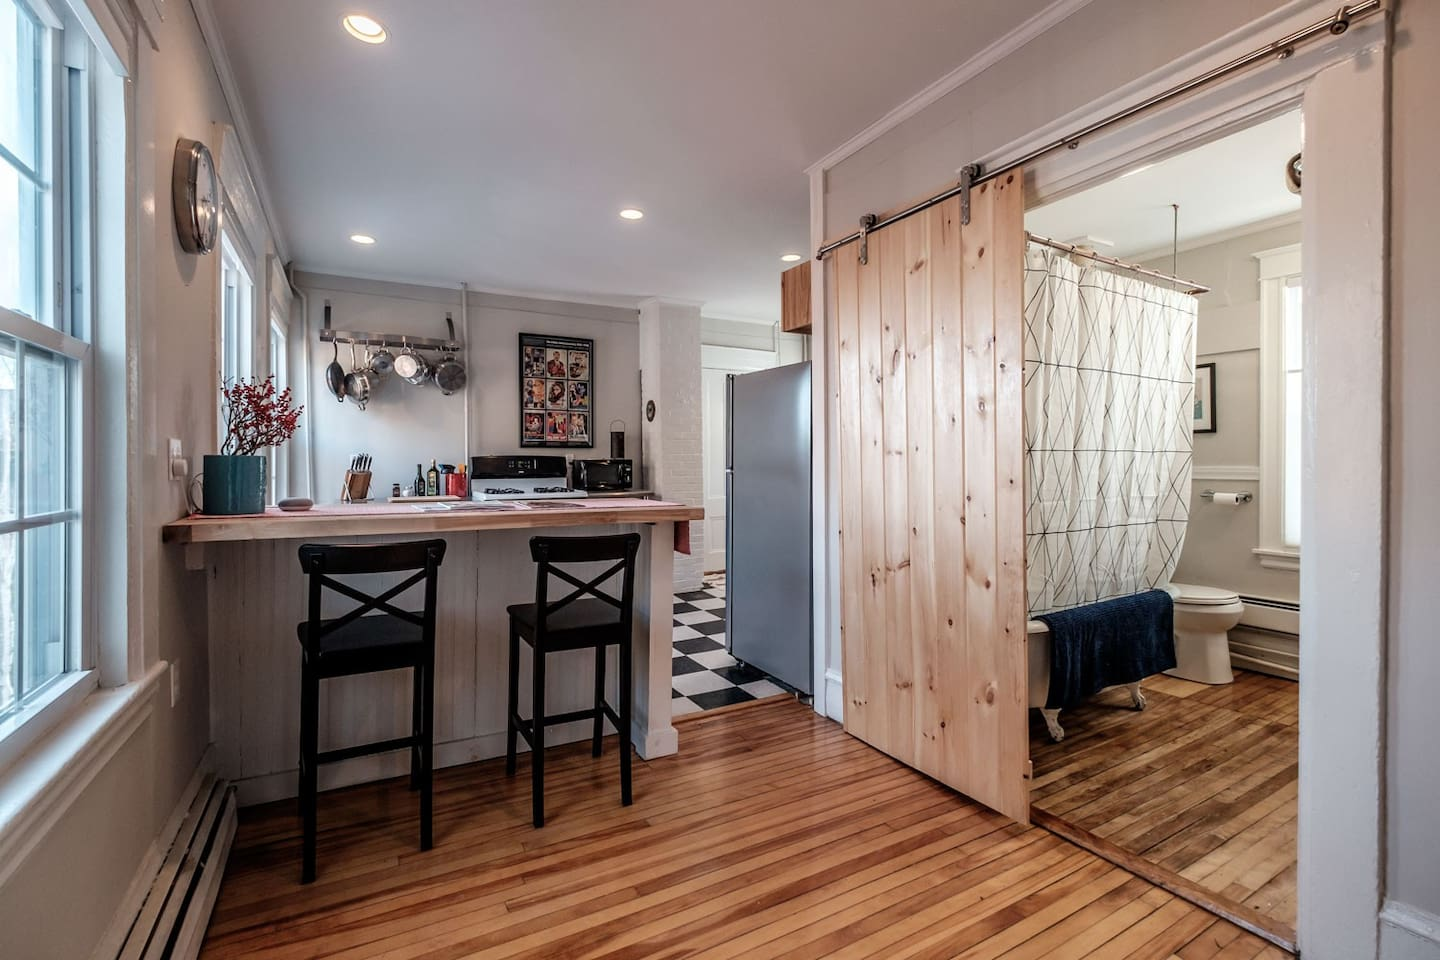 Gather around the butcher block for coffee, drinks or dinner